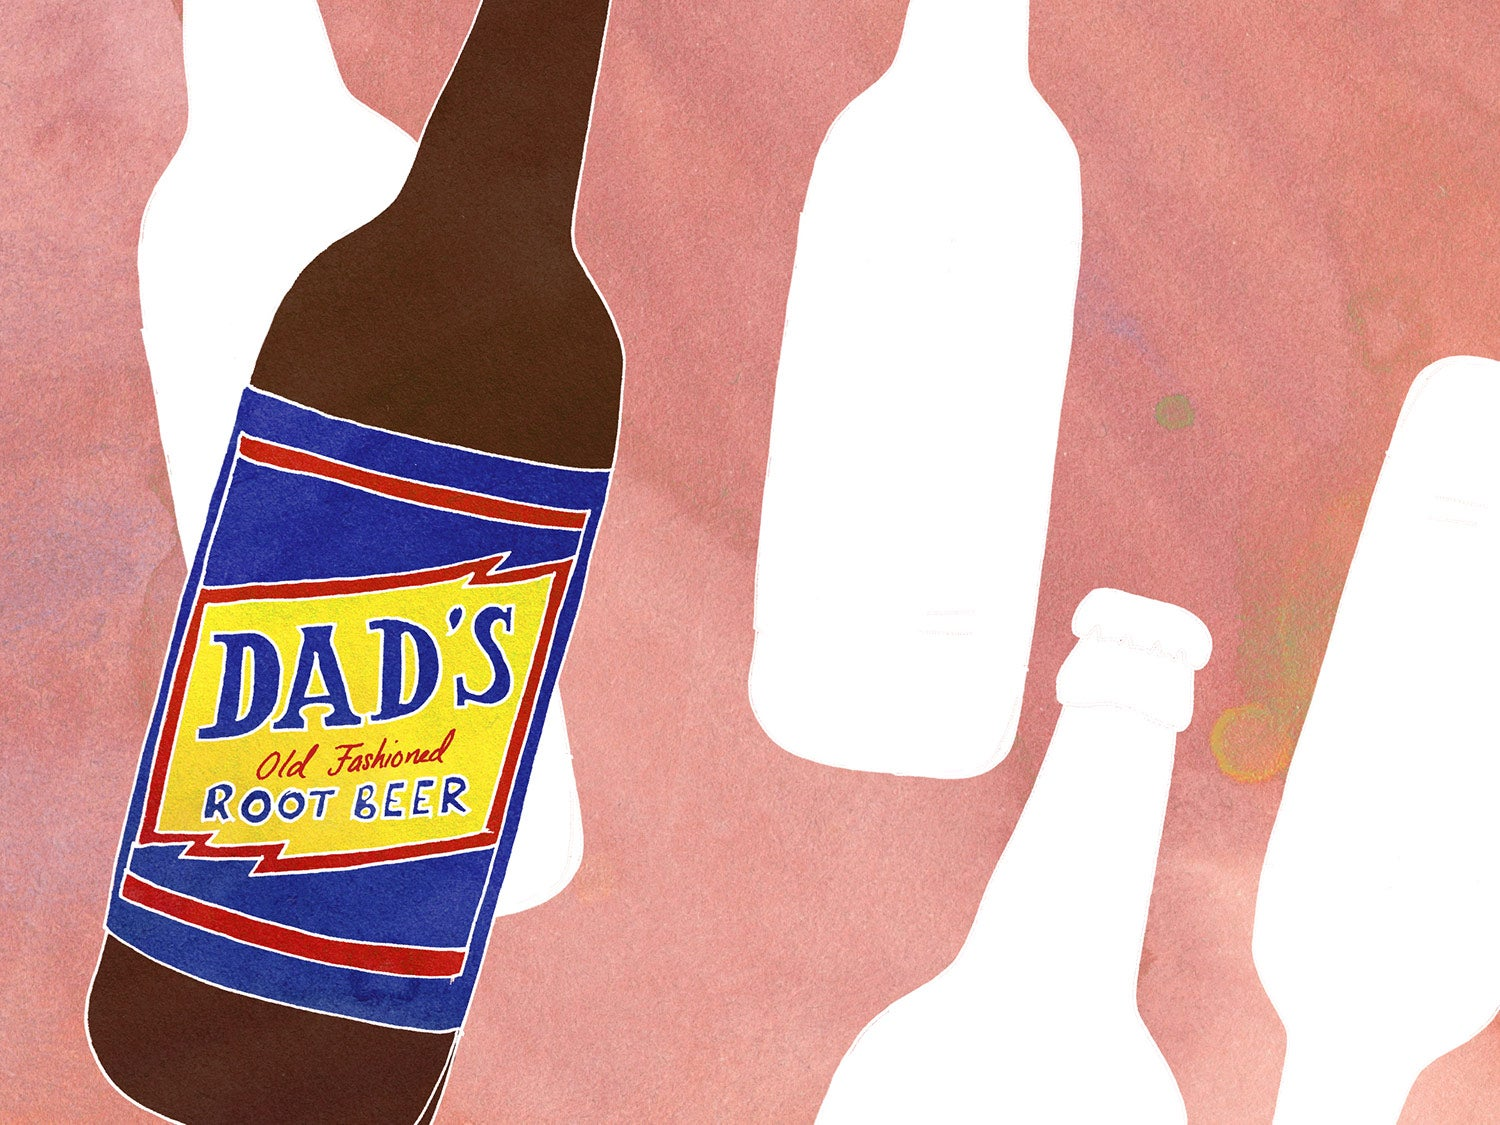 Dads Root Beer Soda